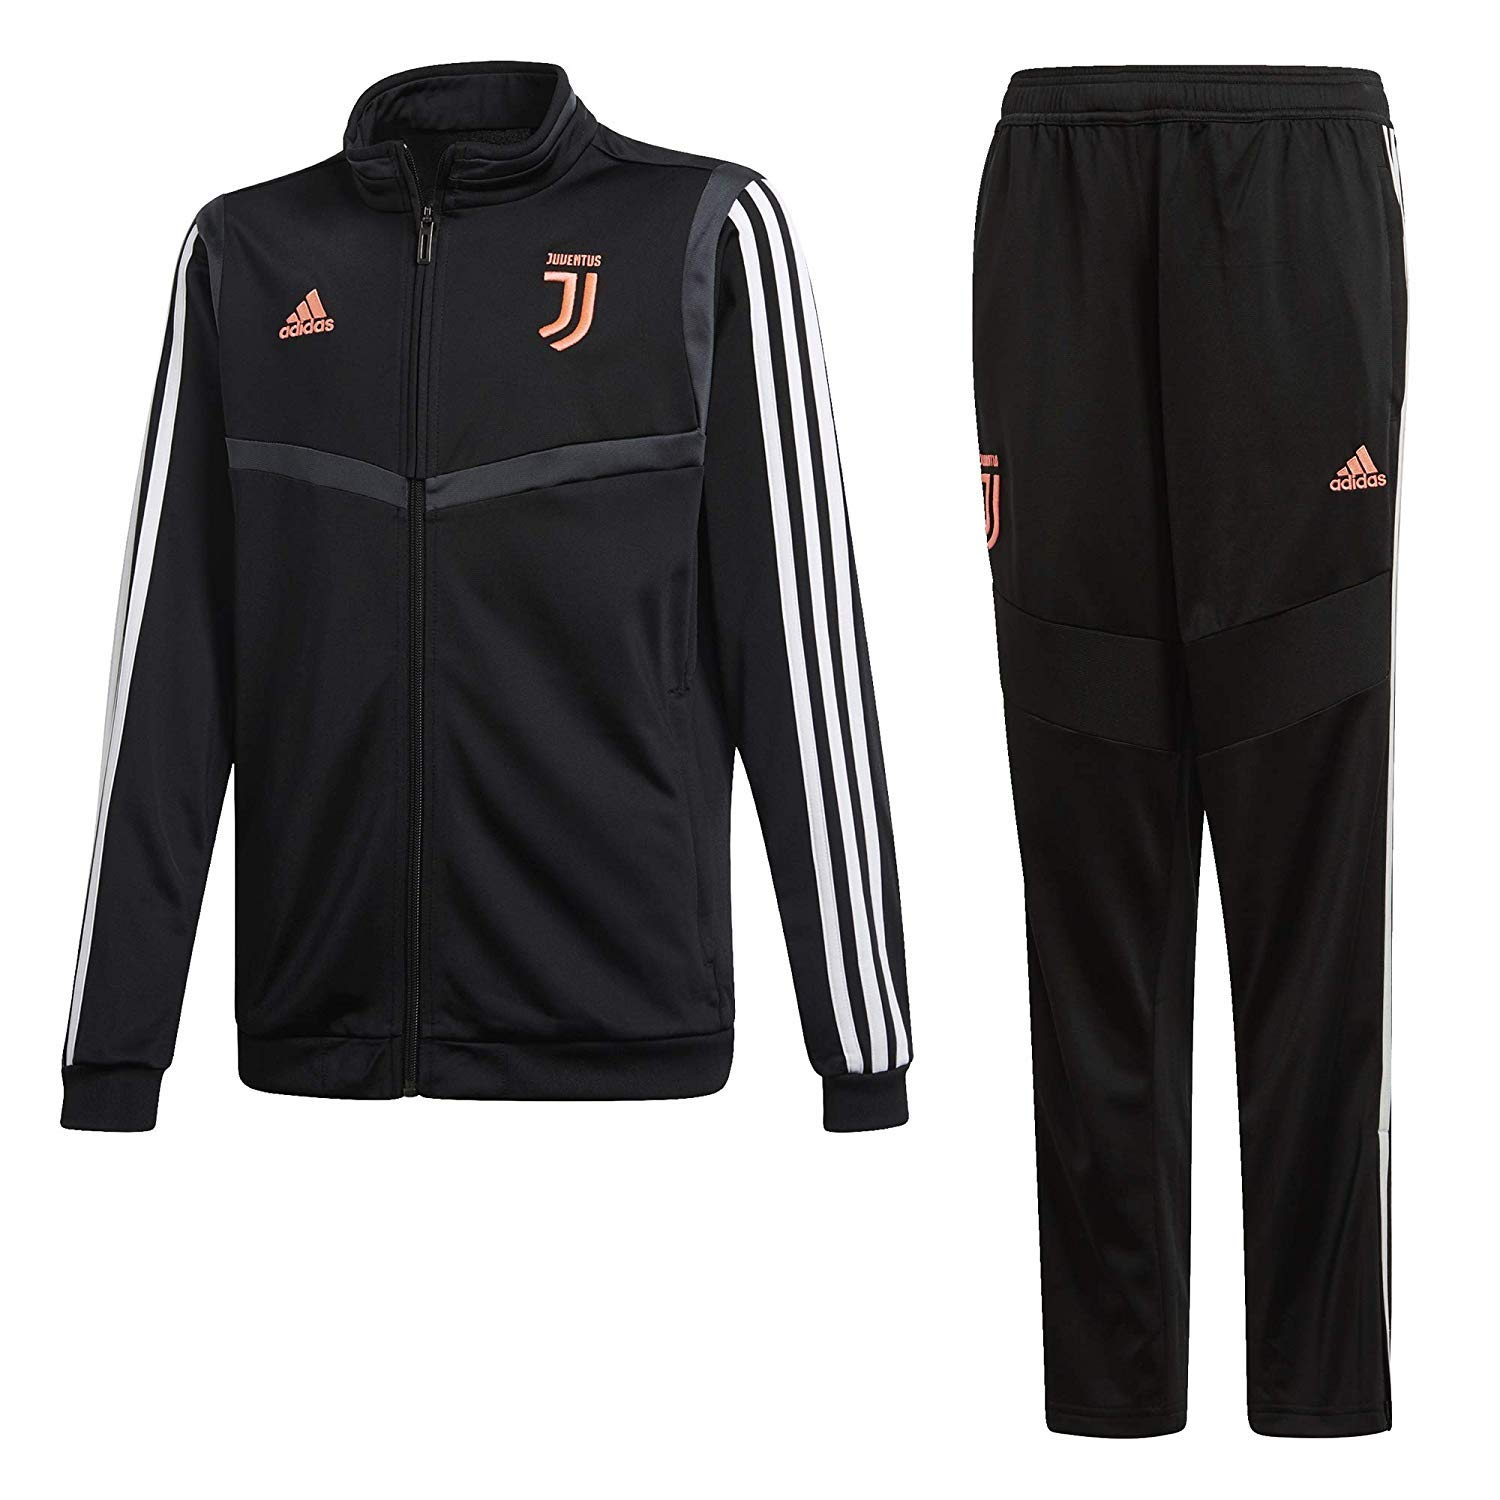 adidas 19/20 Juventus Polyester Suit Youth Suits, Unisex niños ...